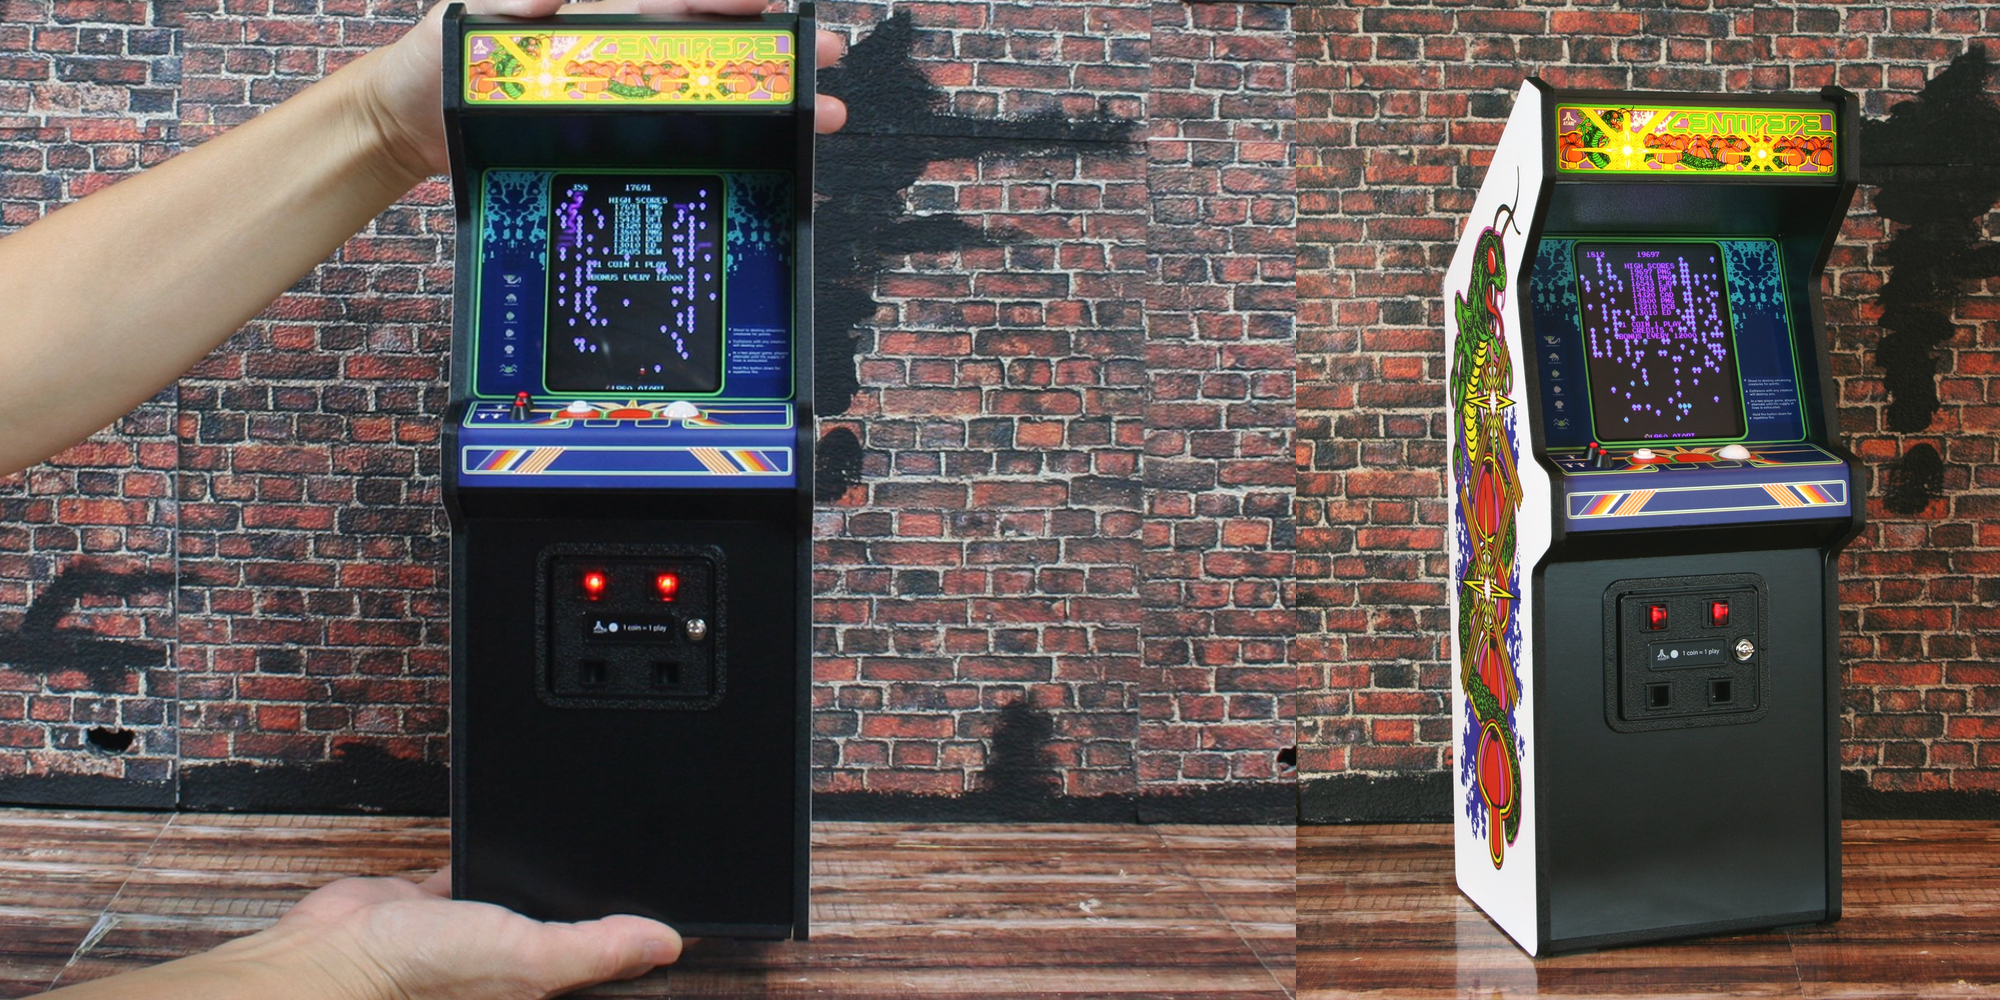 Adorn Your Desk W The Replicade X Centipede Arcade Cabinet At 109 50 Reg 160 All Time Low 9to5toys